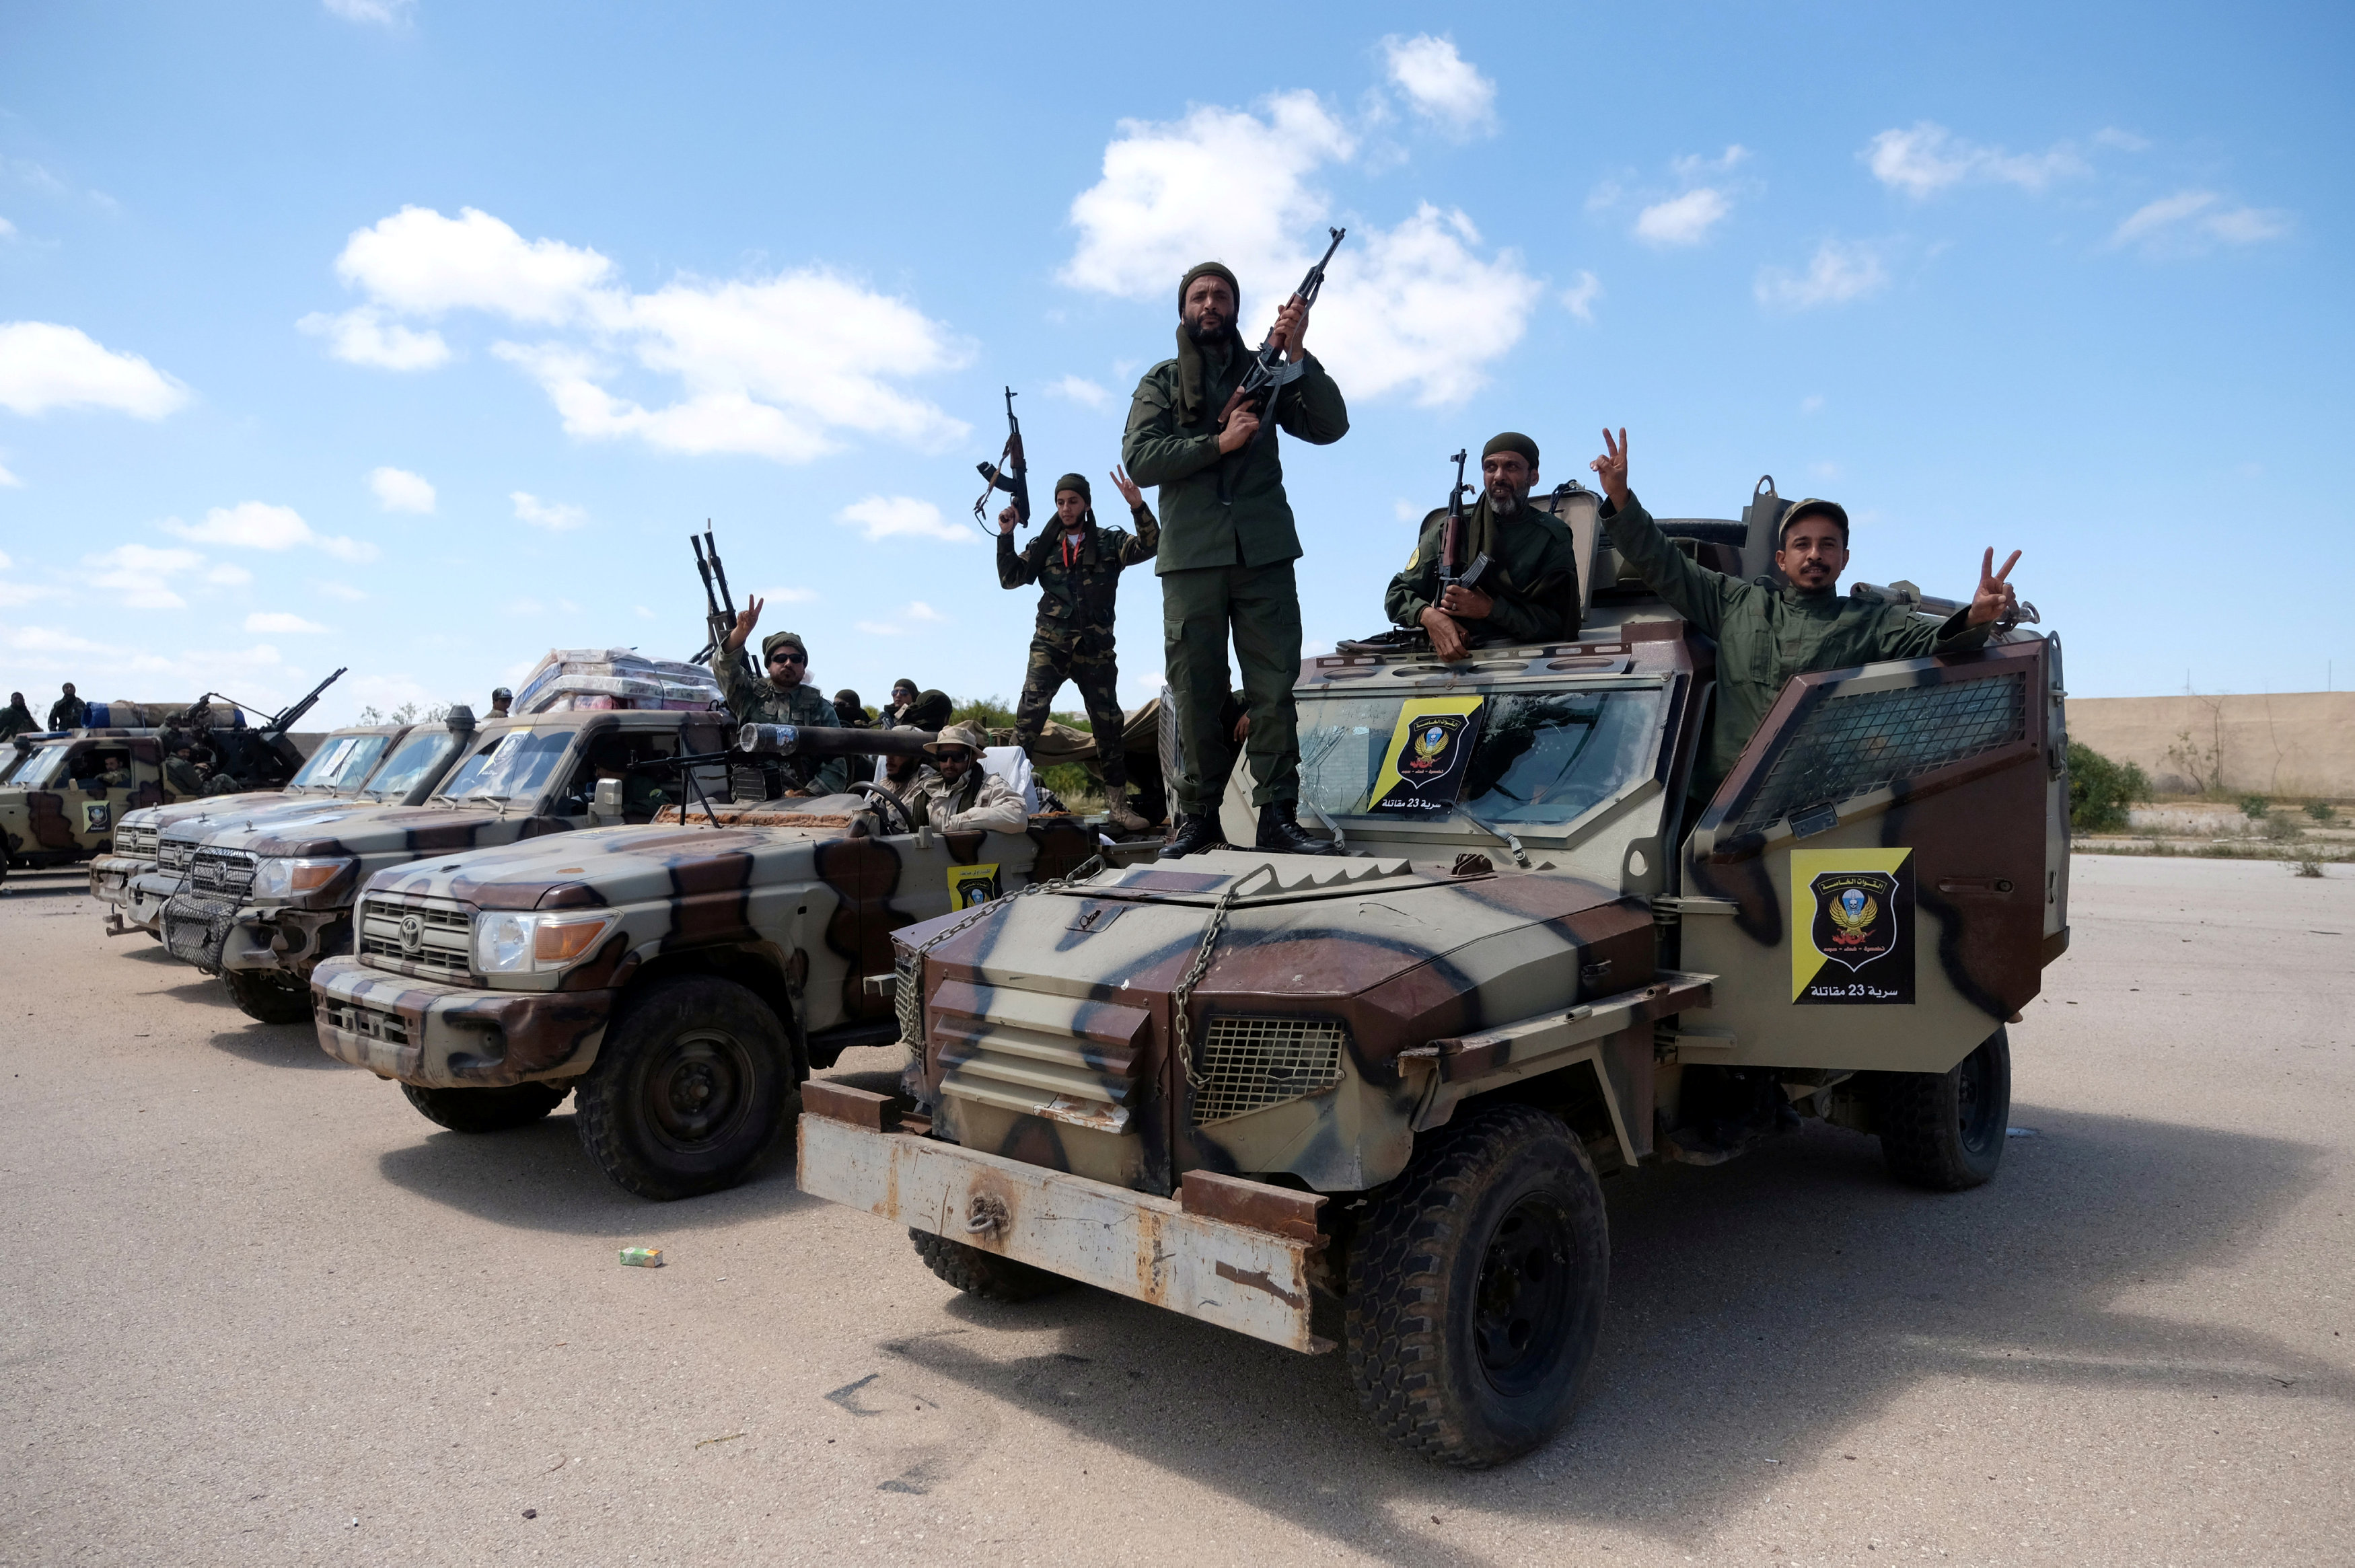 Hasil gambar untuk American troops in Libya moved out of country as violence escalates near capital